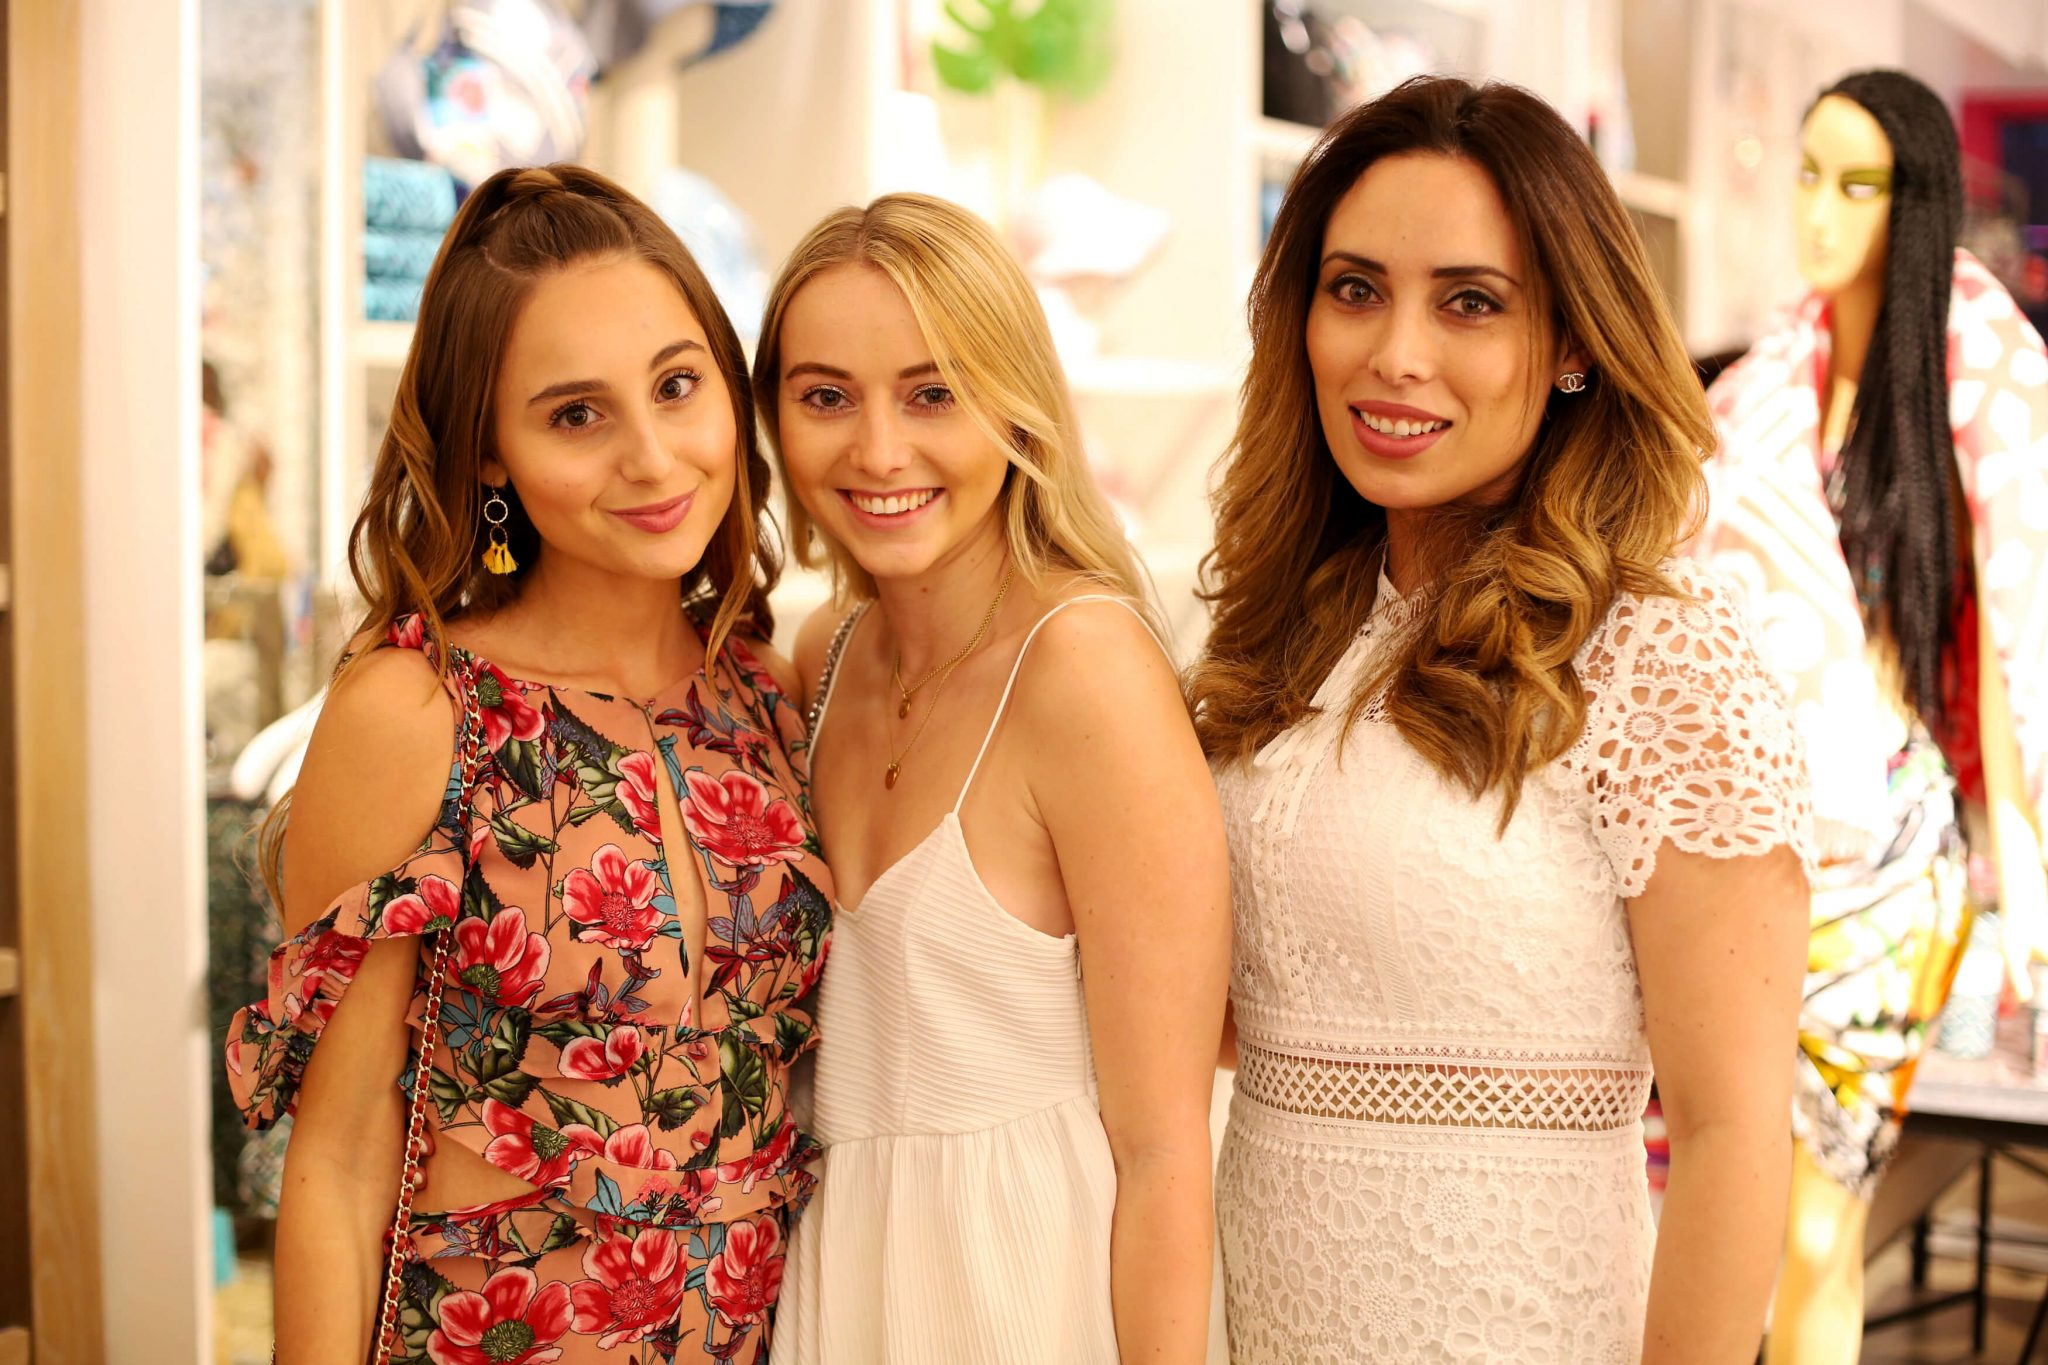 Alexandra Chloe, Vivien Gutbrod and Tatiana Pujol at Blogger and the Brand Shop